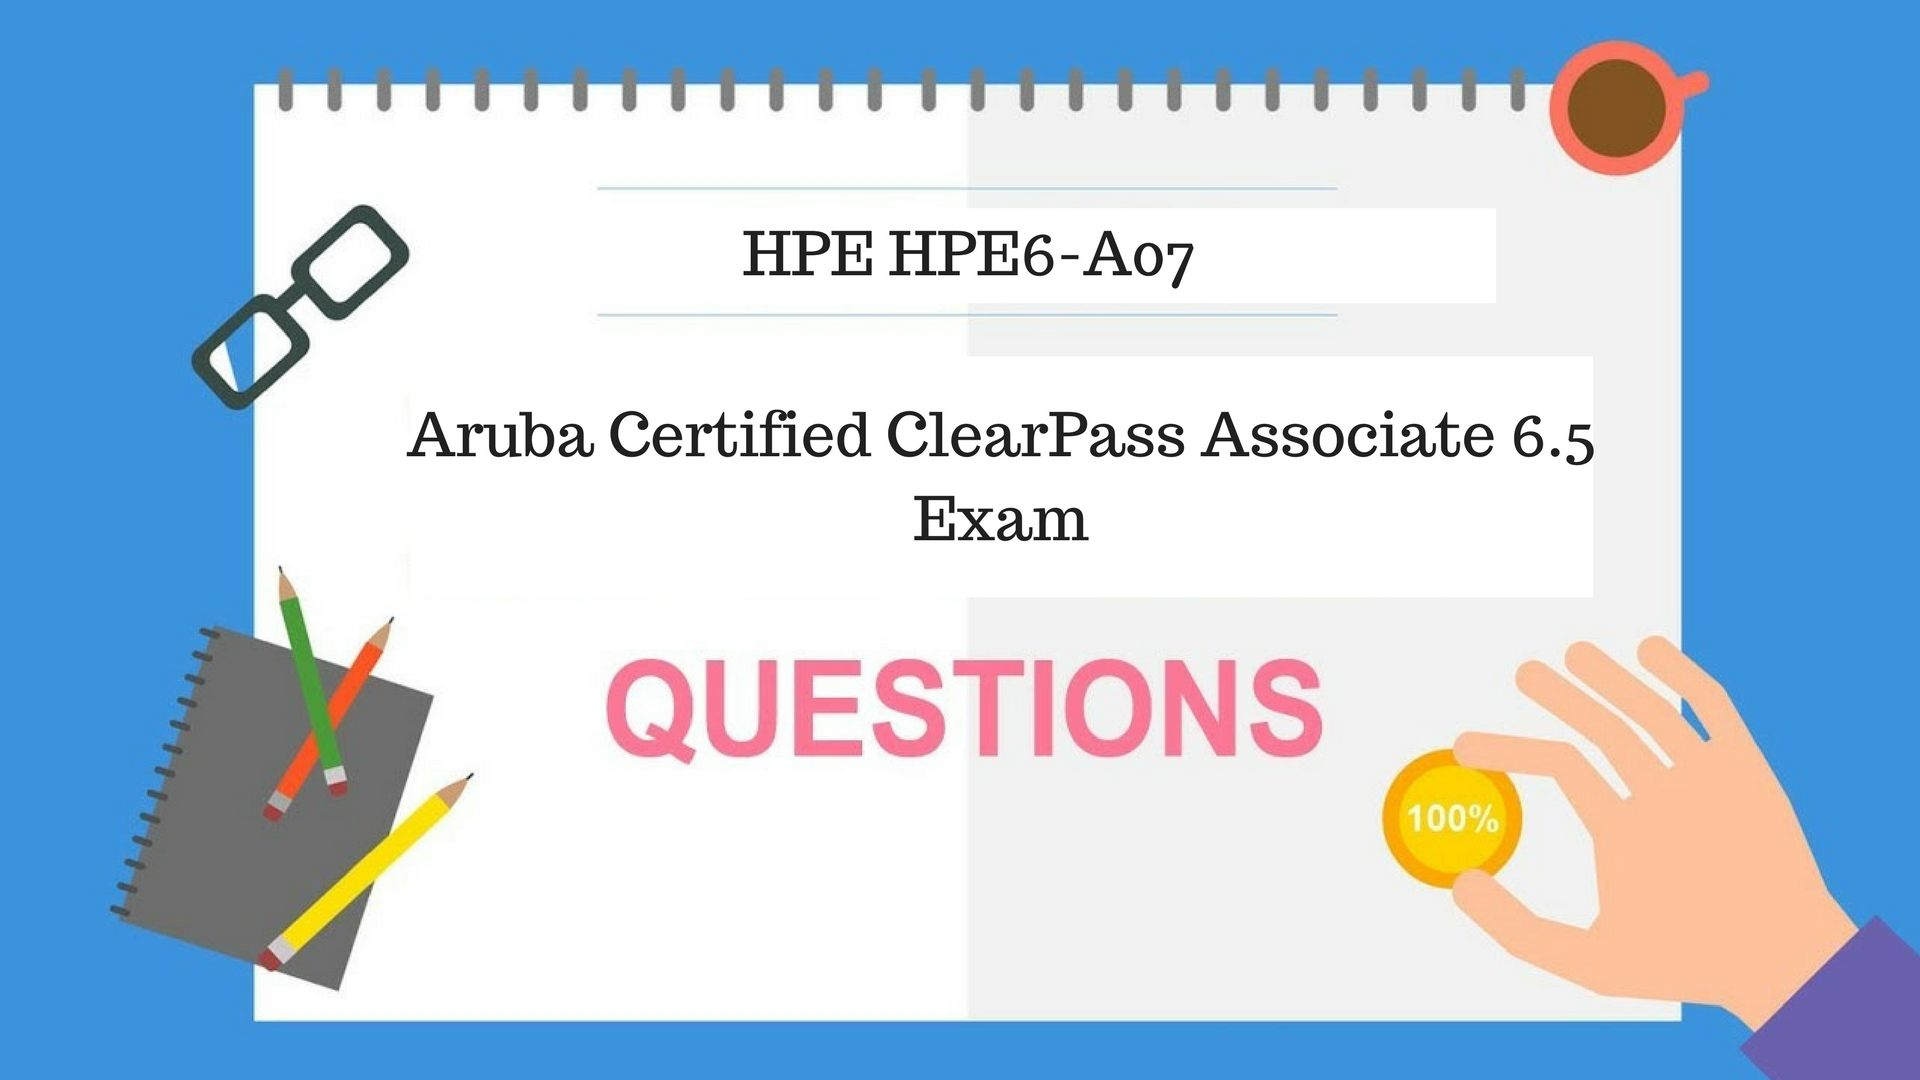 Pin by Fravo on HP | Certificate, How to apply